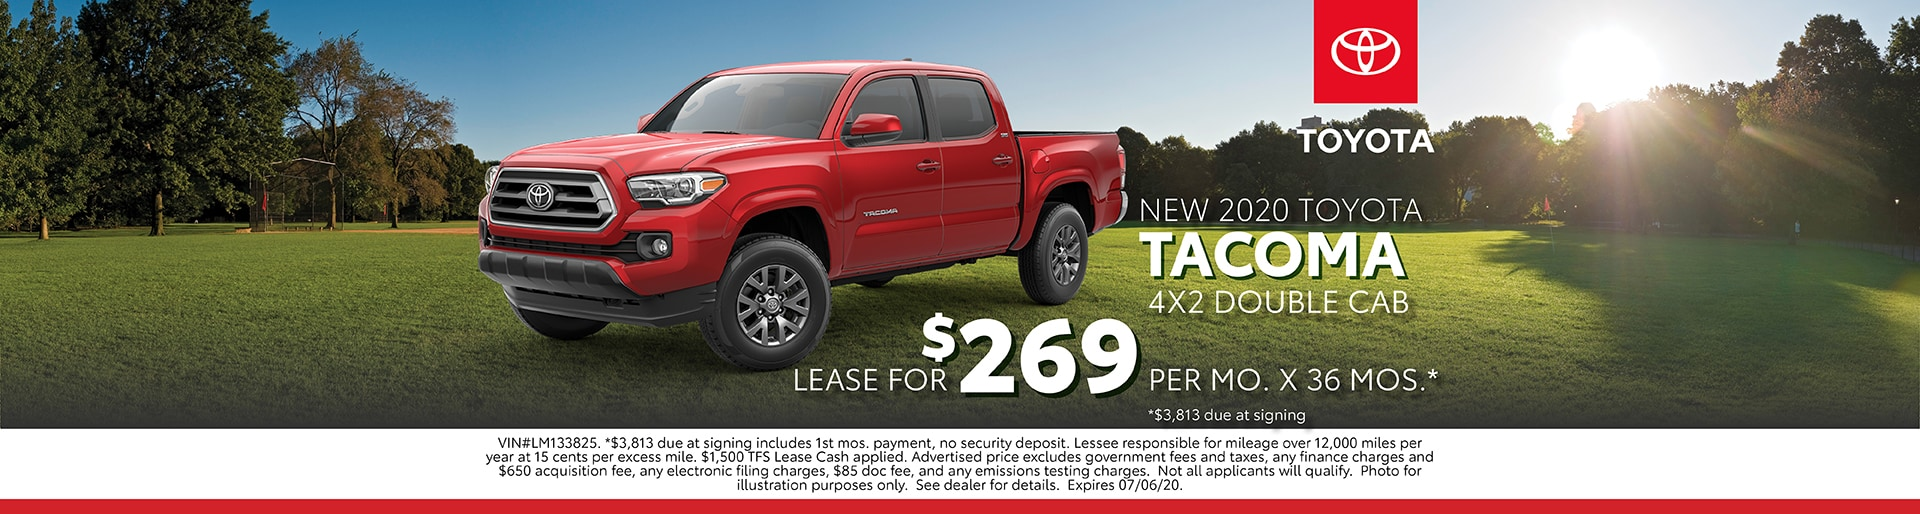 Tacoma Lease Offer